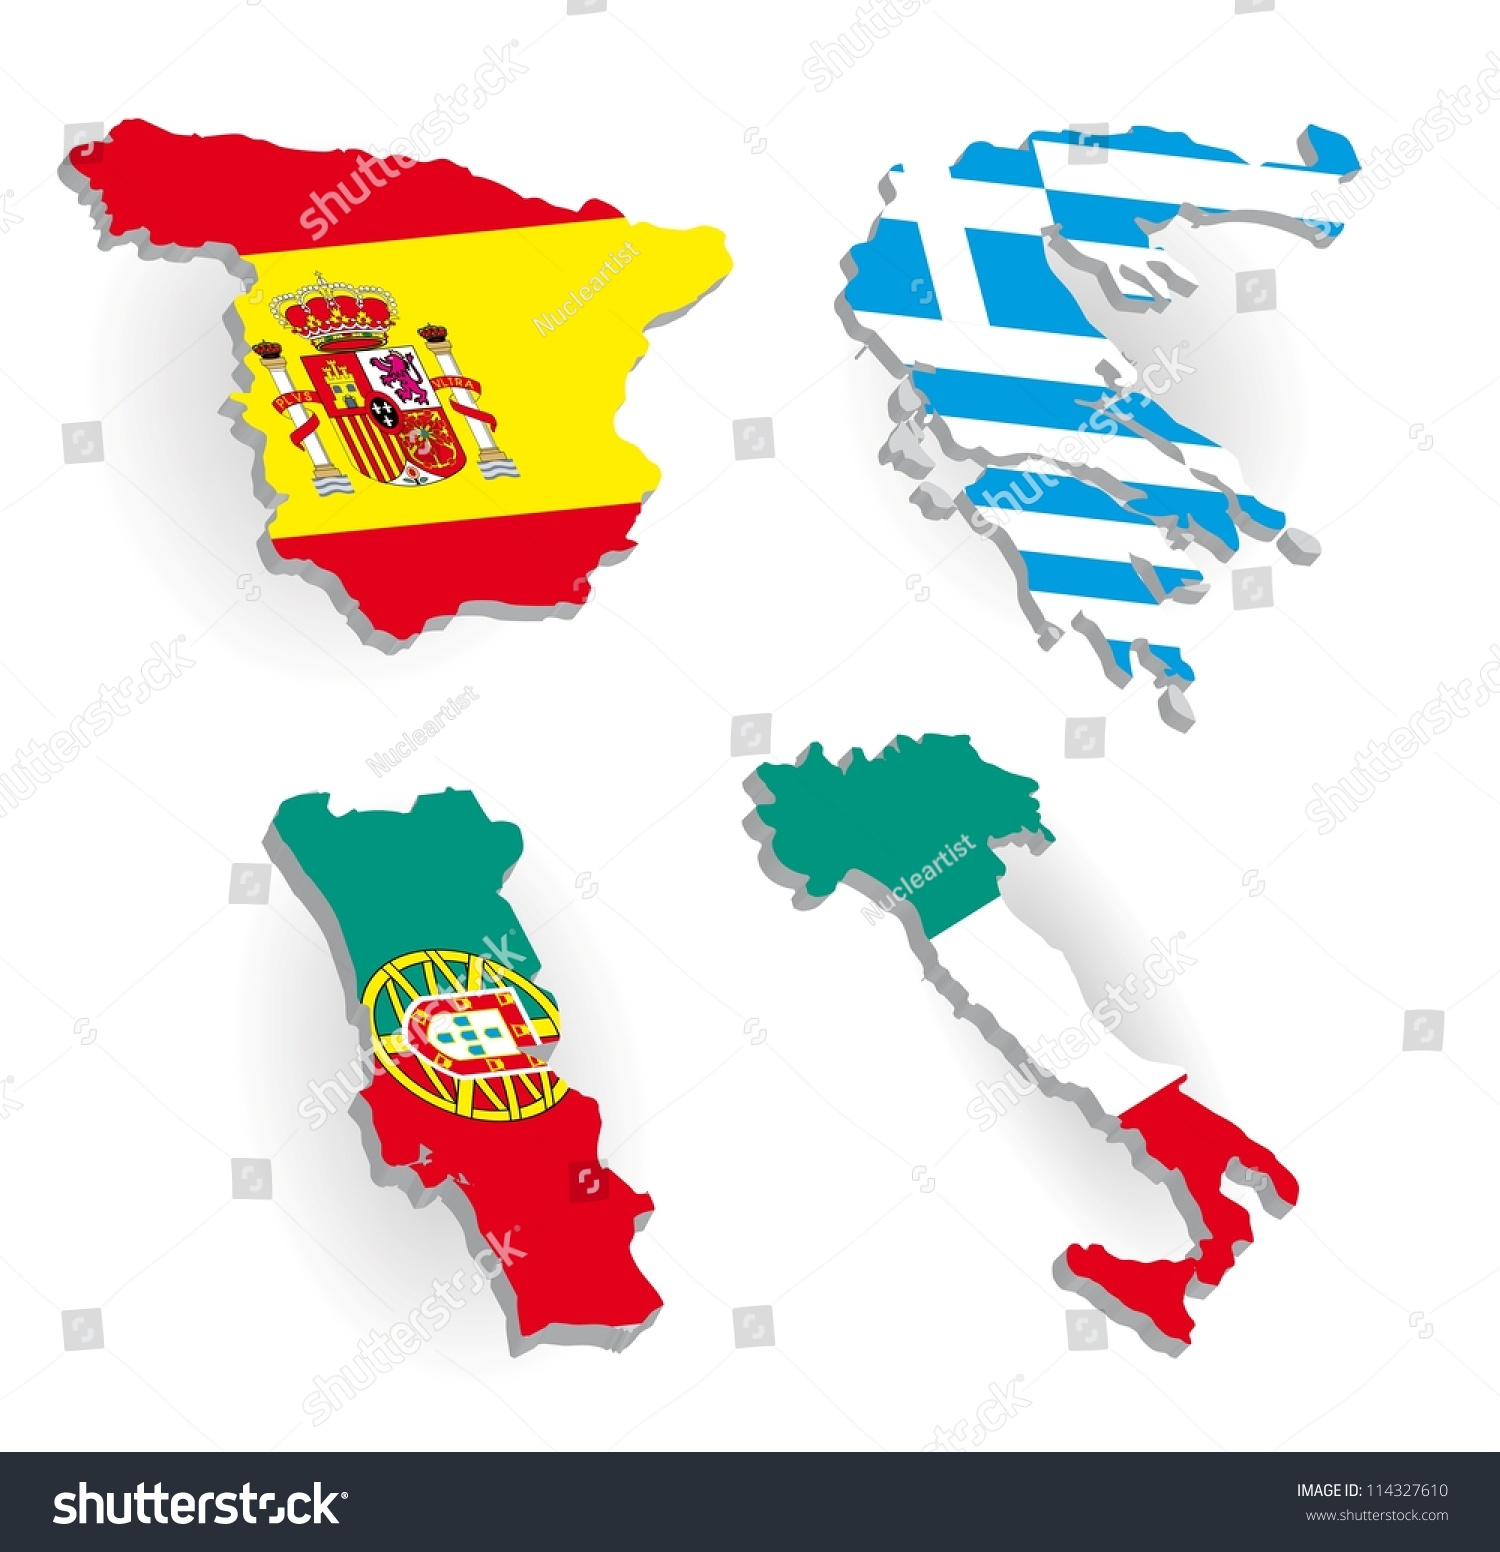 Map Of Spain And Greece.Greece Spain Portugal Italy Country Maps Stock Vector Royalty Free